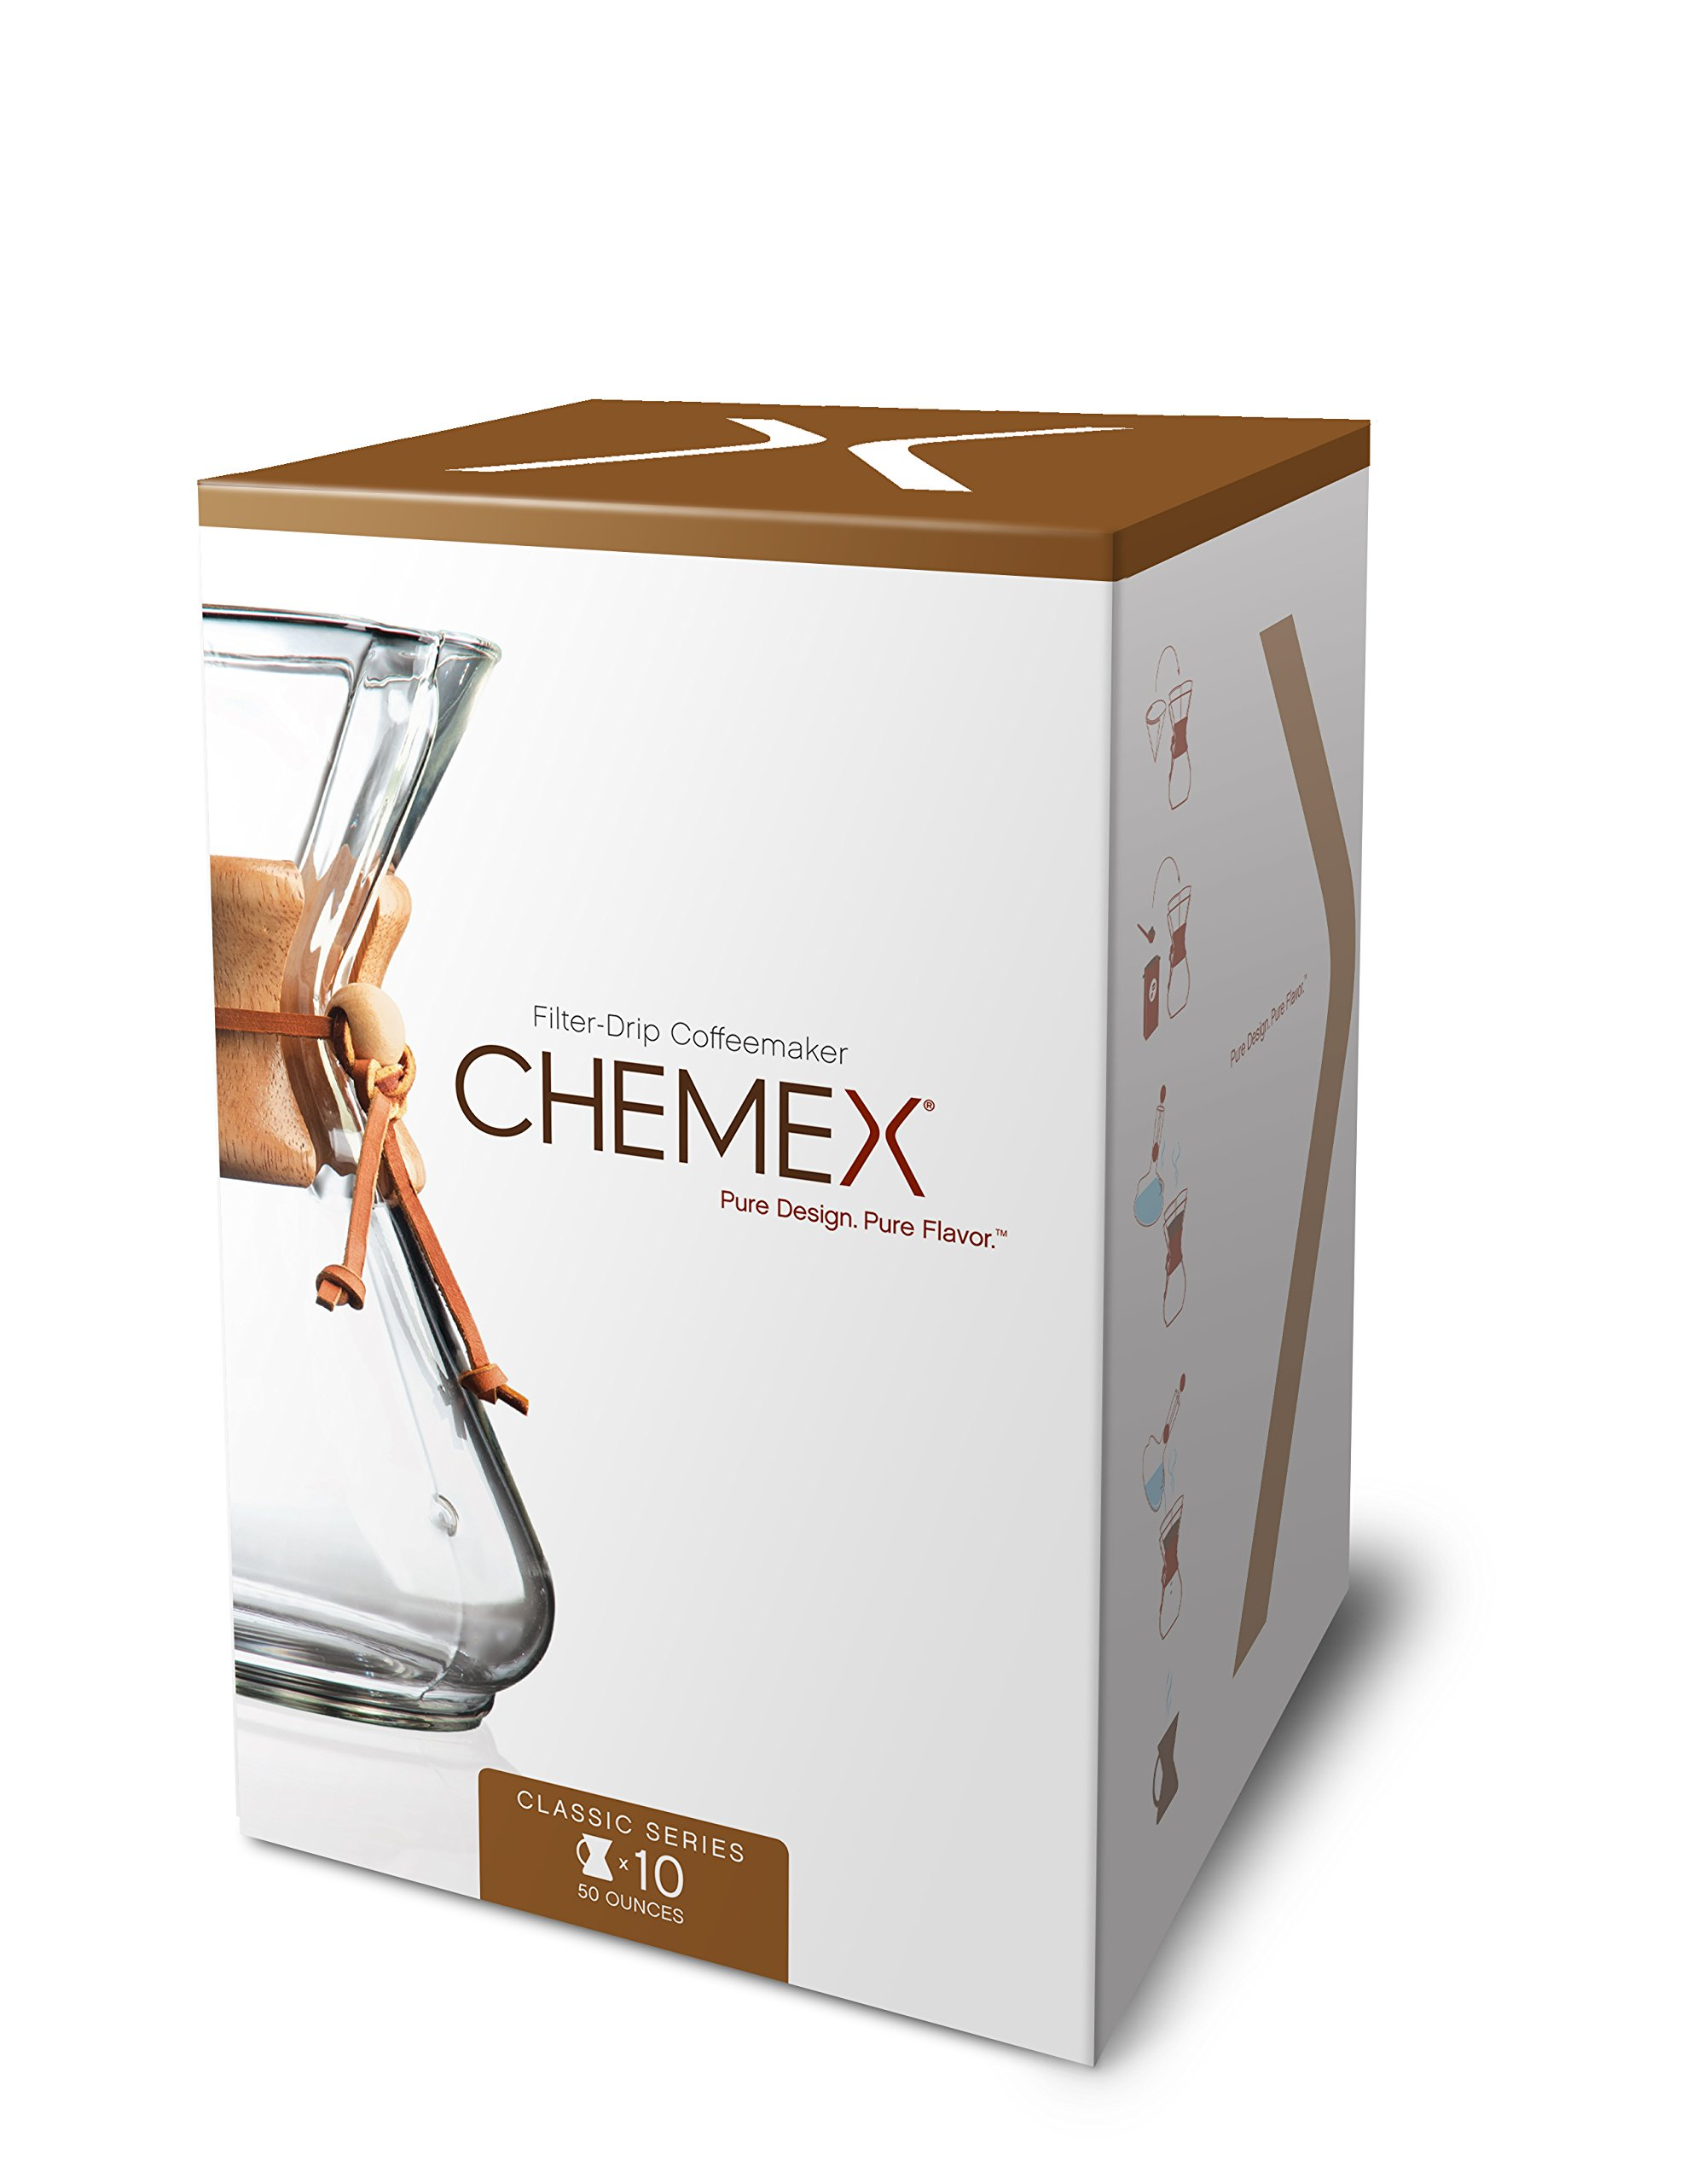 Chemex Classic Series, Pour-Over Glass Coffeemaker, 10 Cup - Exclusive Packaging by Chemex